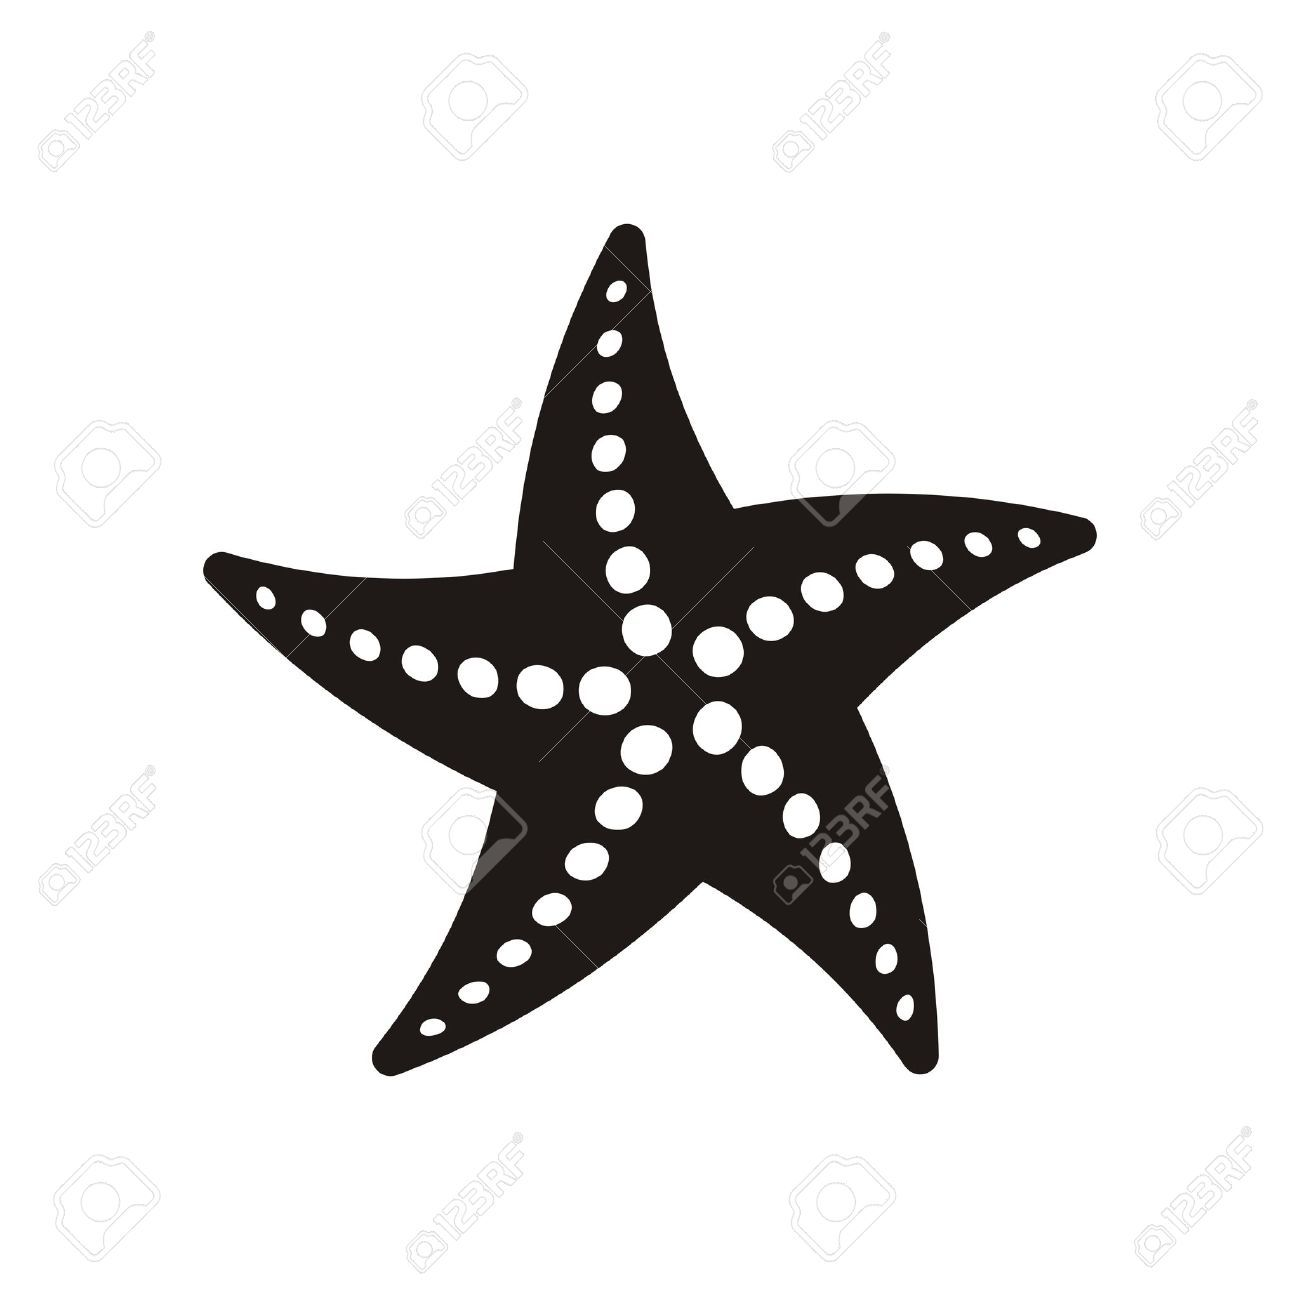 Black Vector Starfish Icon Isolated On White Background Starfish Drawing Clip Art Pictures Art